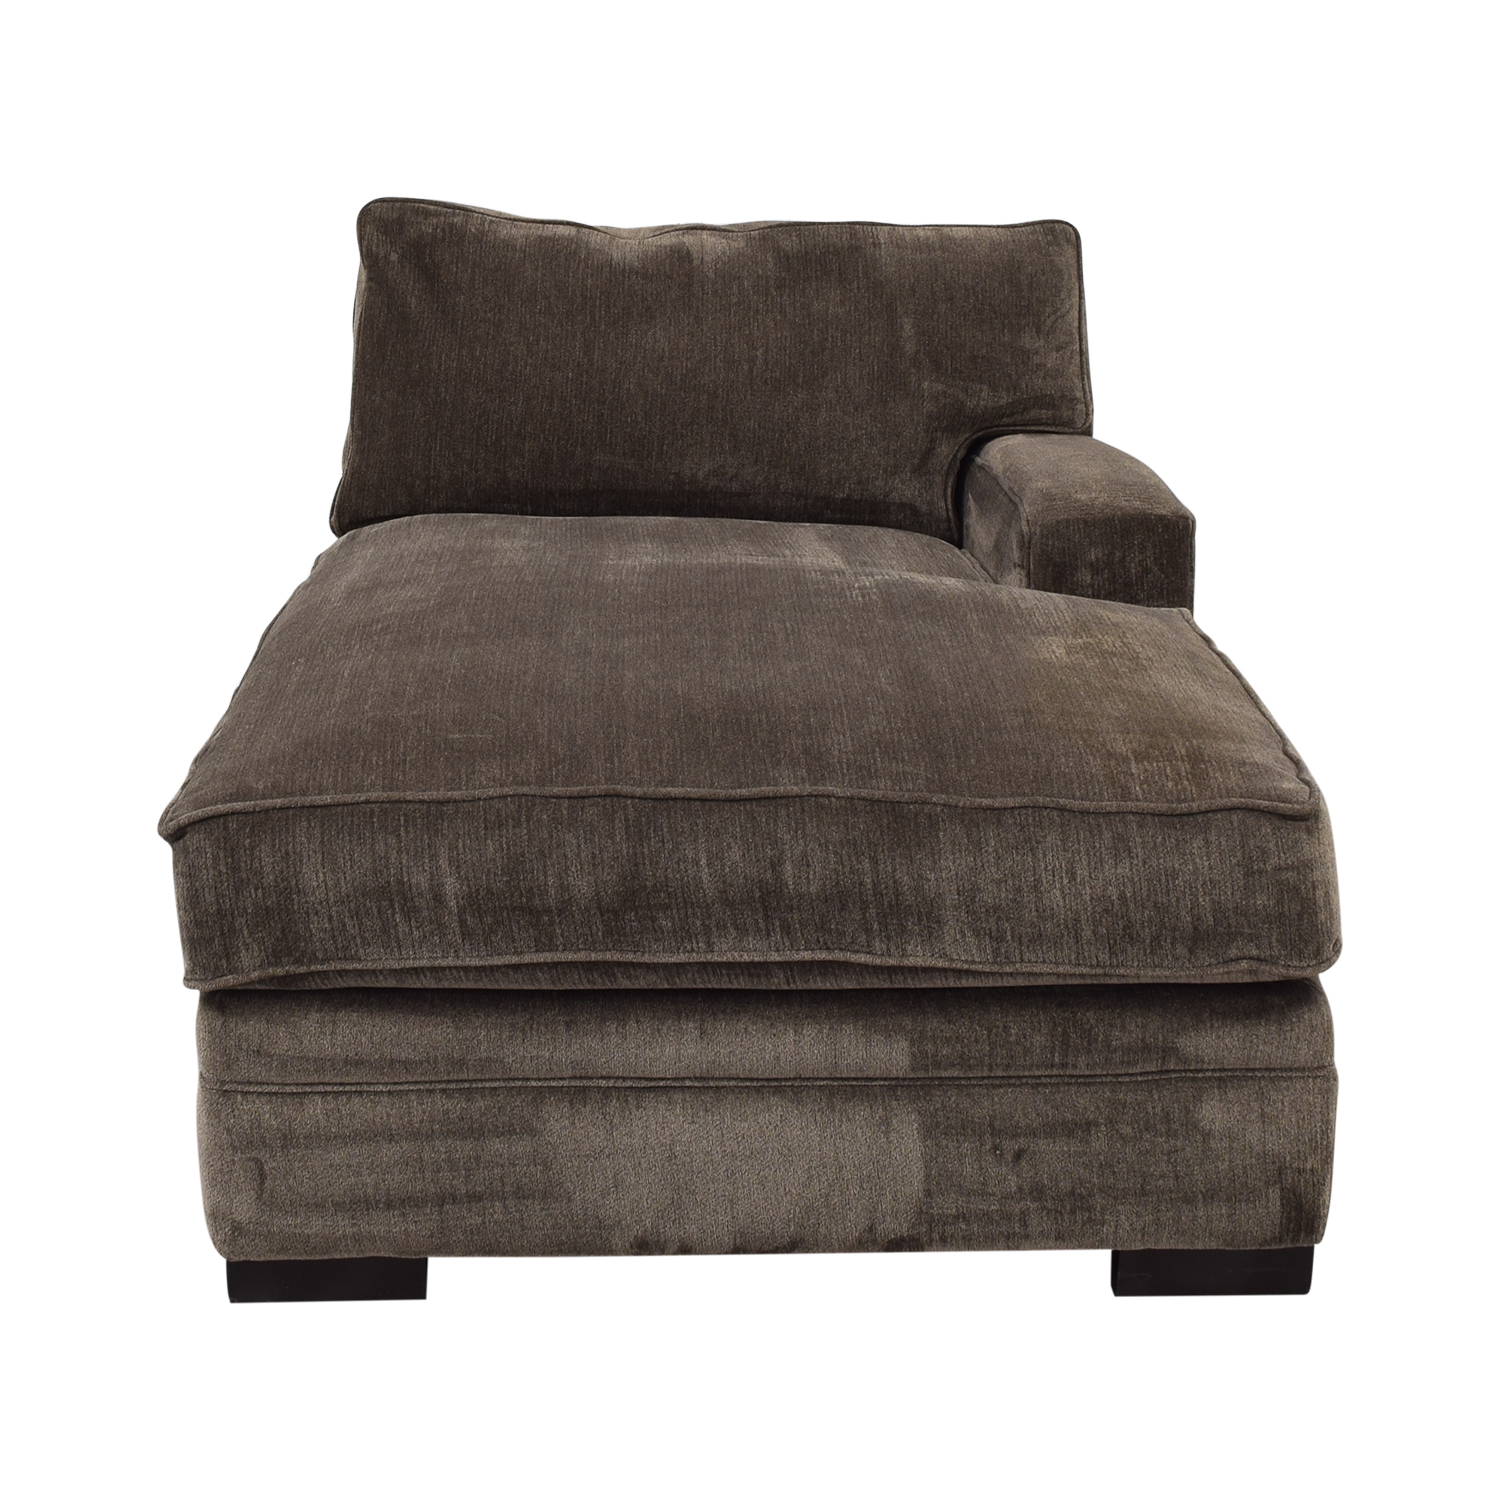 Macy's Macy's Teddy Brown Chaise Lounger Sofas